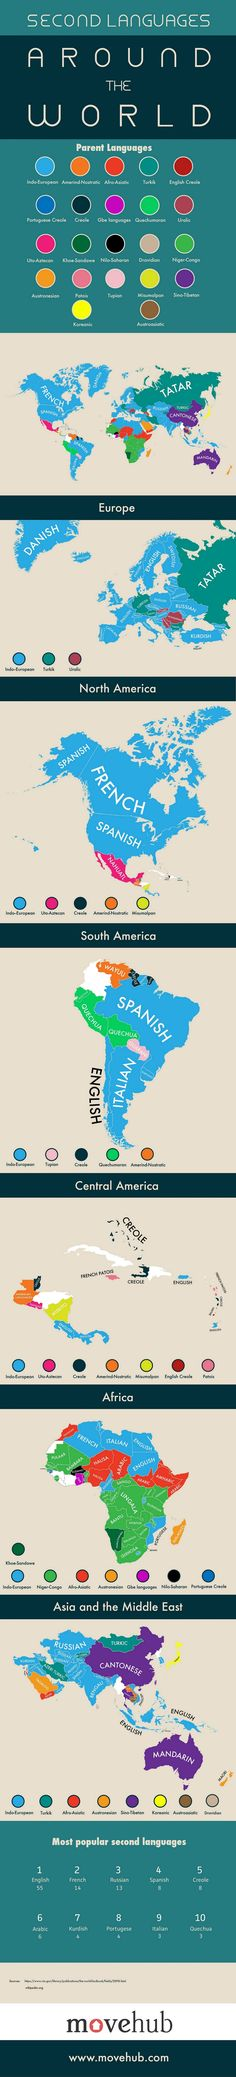 second languages map of the world. Some are predictable, others not so much. If you're seeking #counseling in your language in #Milan #Italy, visit us at MilanEnglishCounseling.com